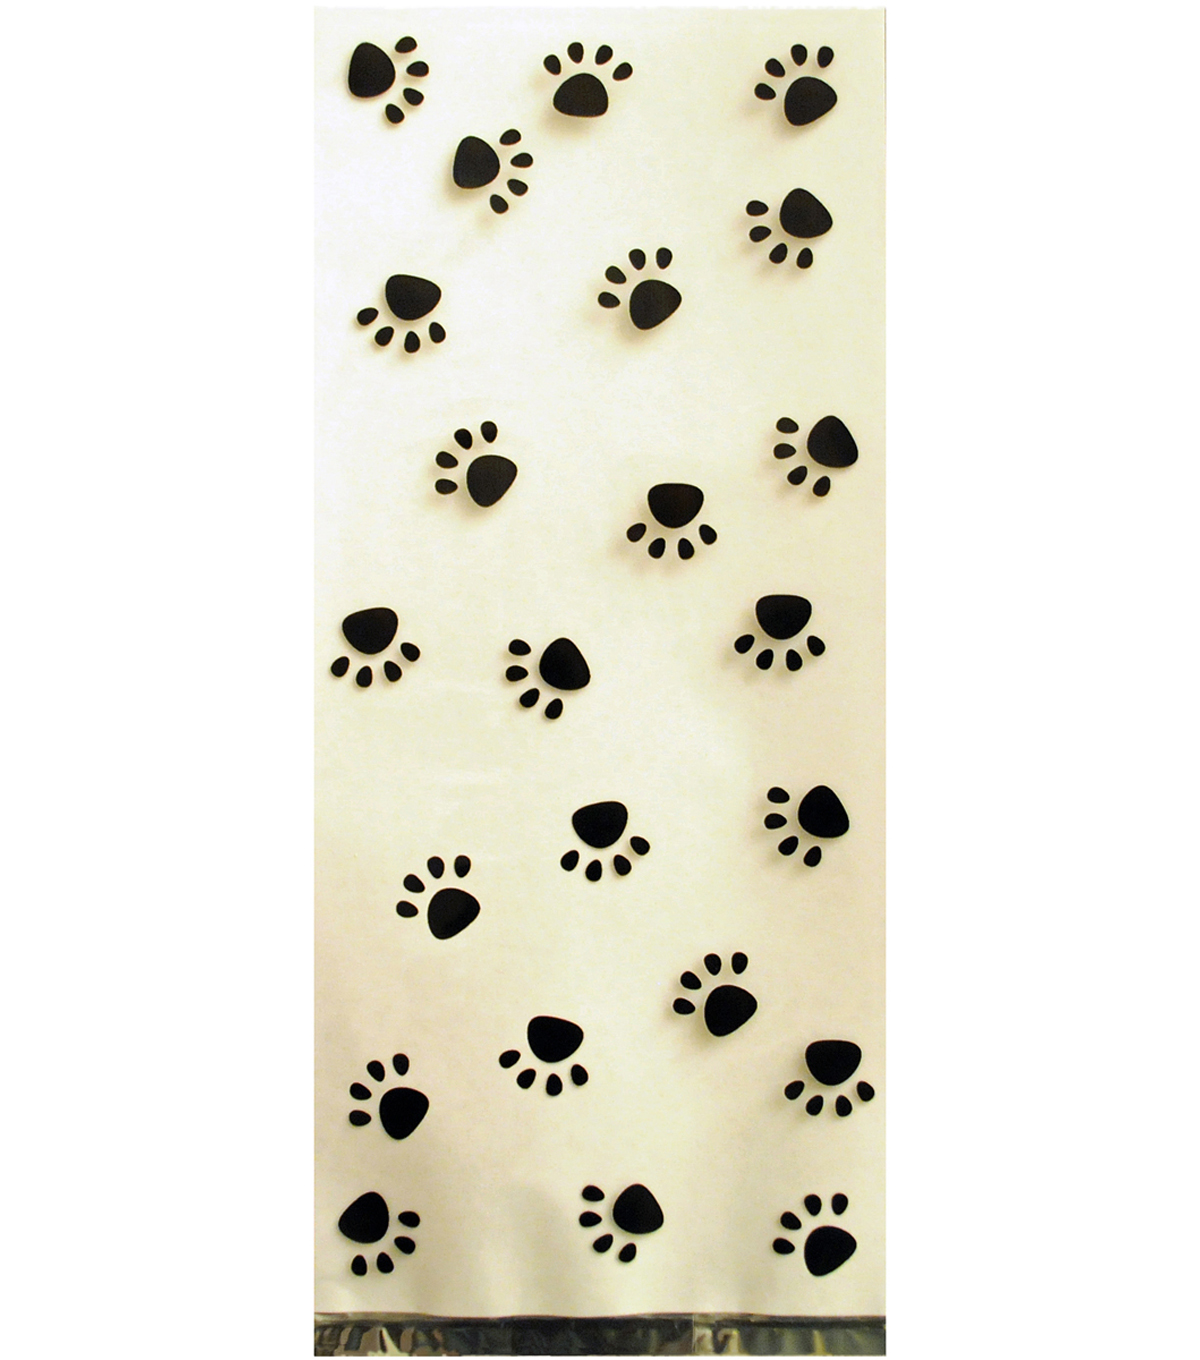 K9 Cakery 100 Pack Treat Bags-Black Dog Paw Print